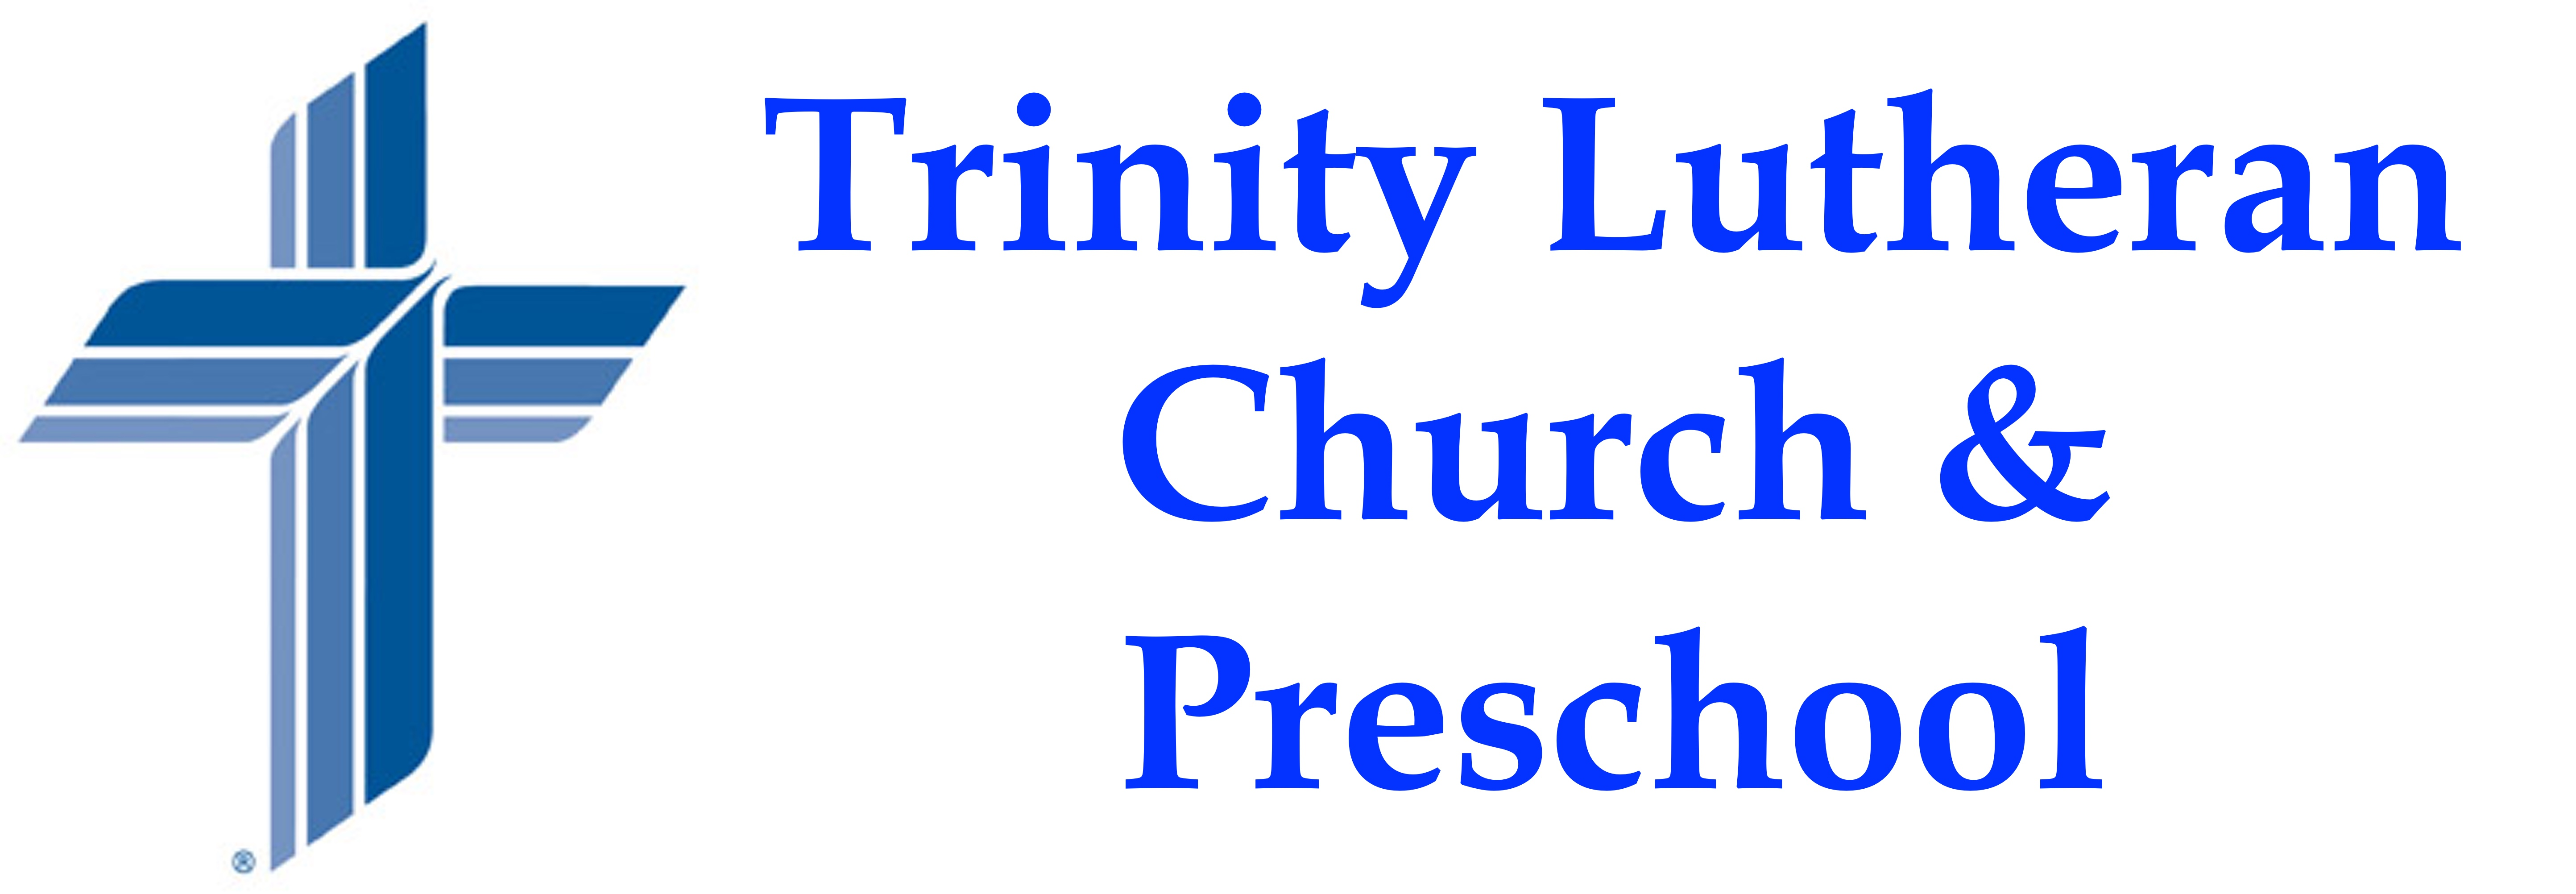 Trinity Lutheran Church & Preschool